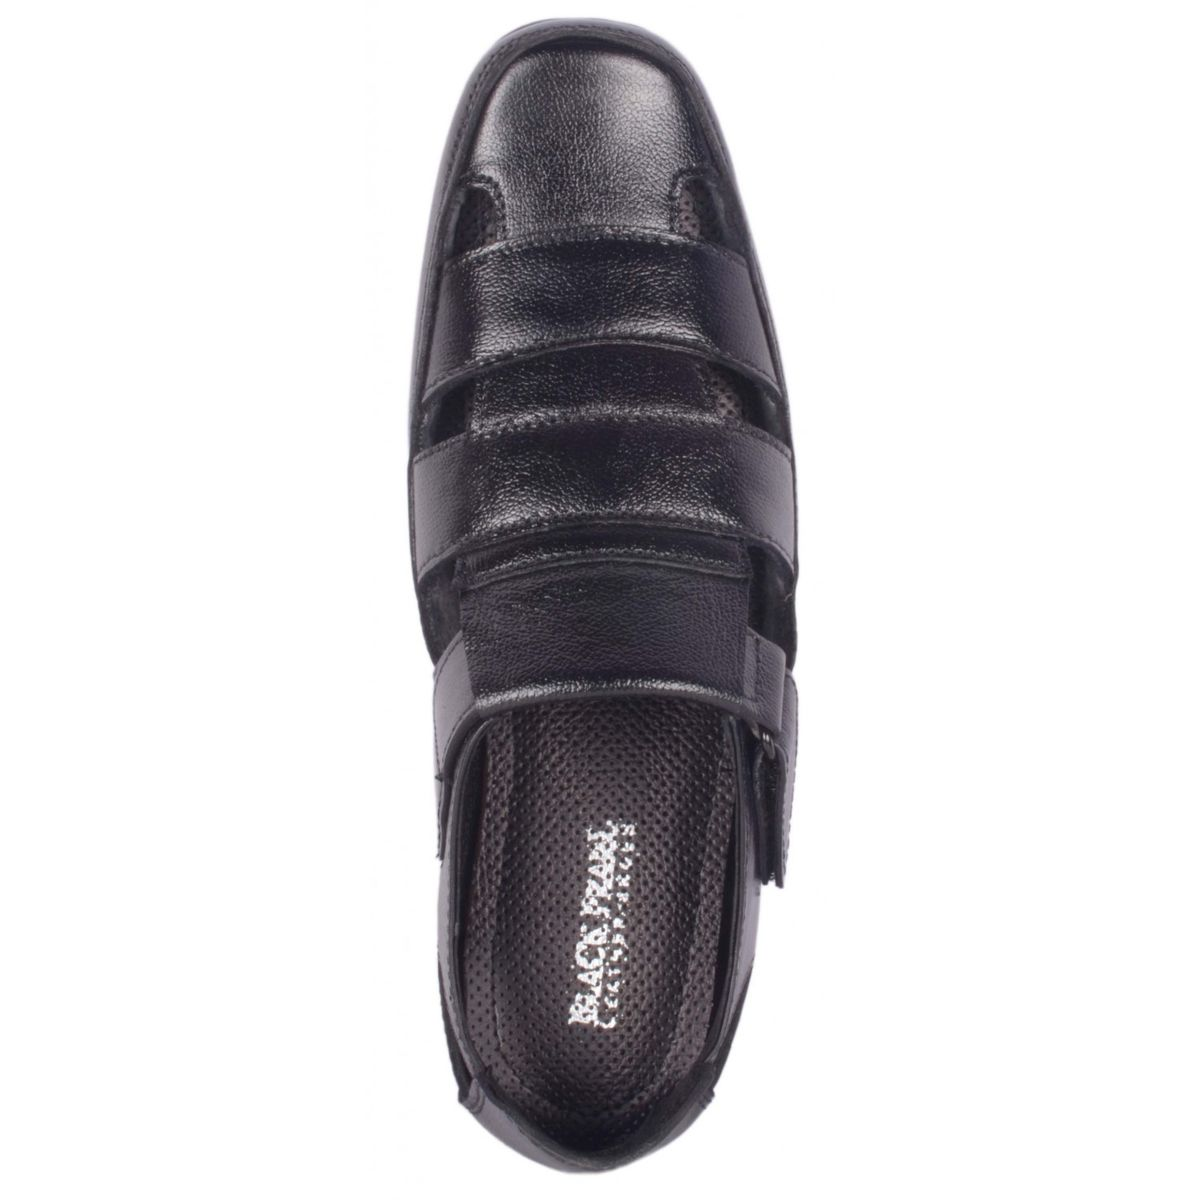 Admire 100 Genuine leather sandals for mens